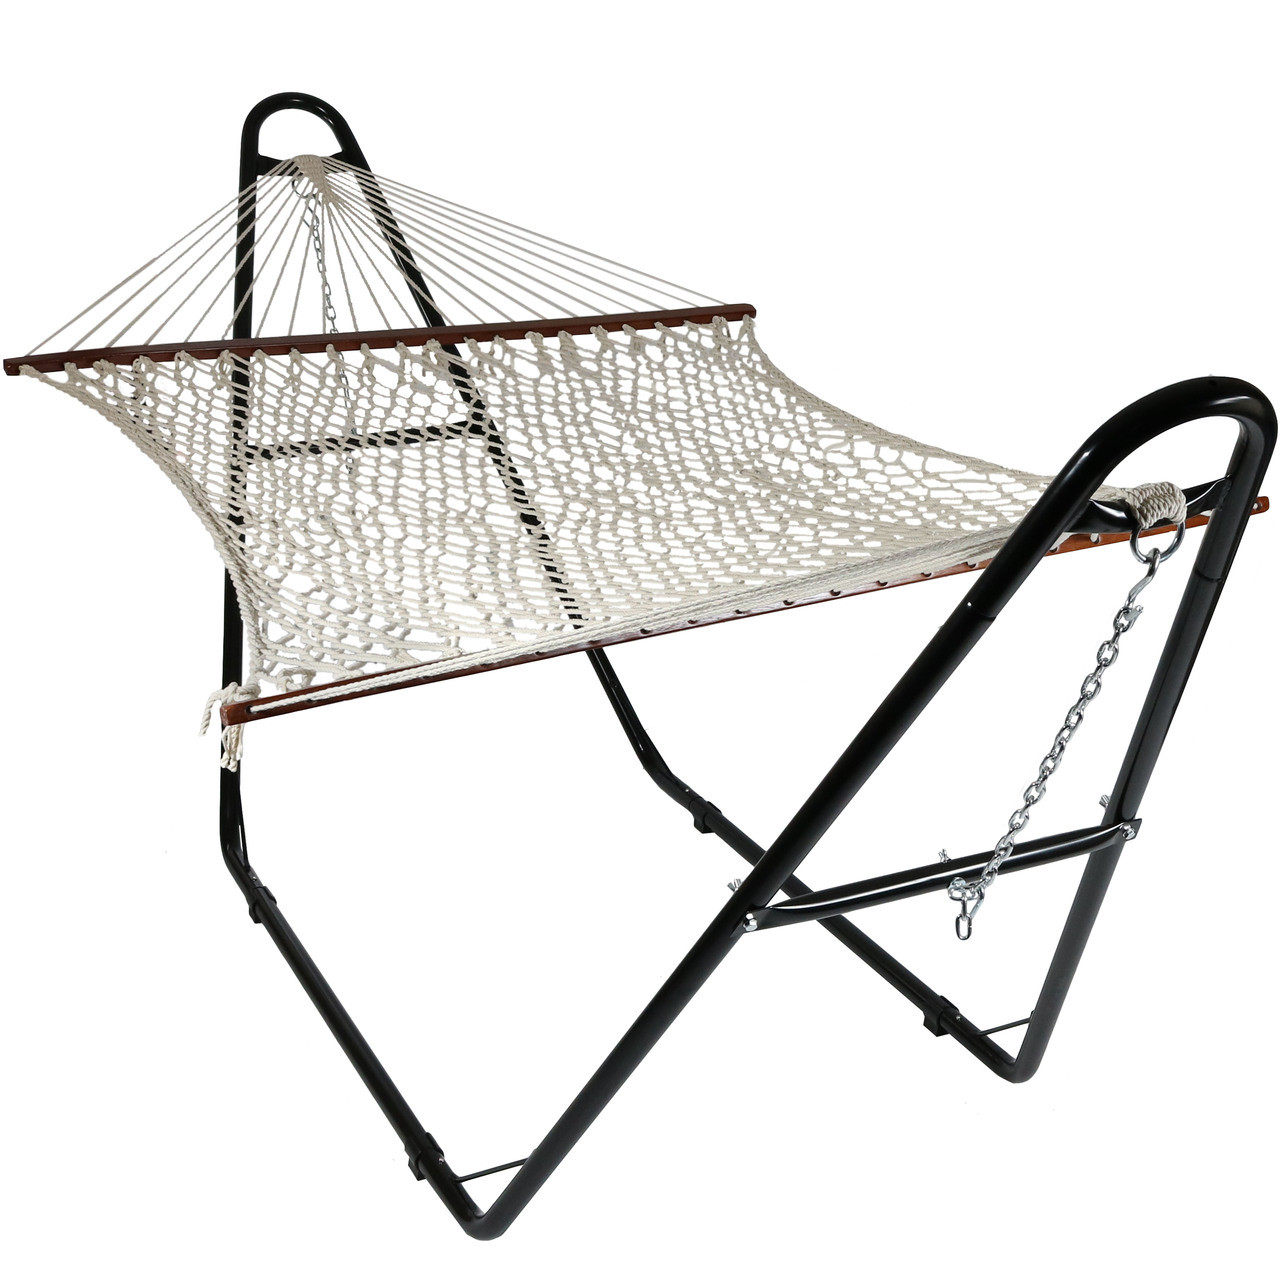 Sunnydaze Cotton Double Wide 2-Person Rope Hammock with Spreader Bars and Multi- CDWHWS-MHS-Combo